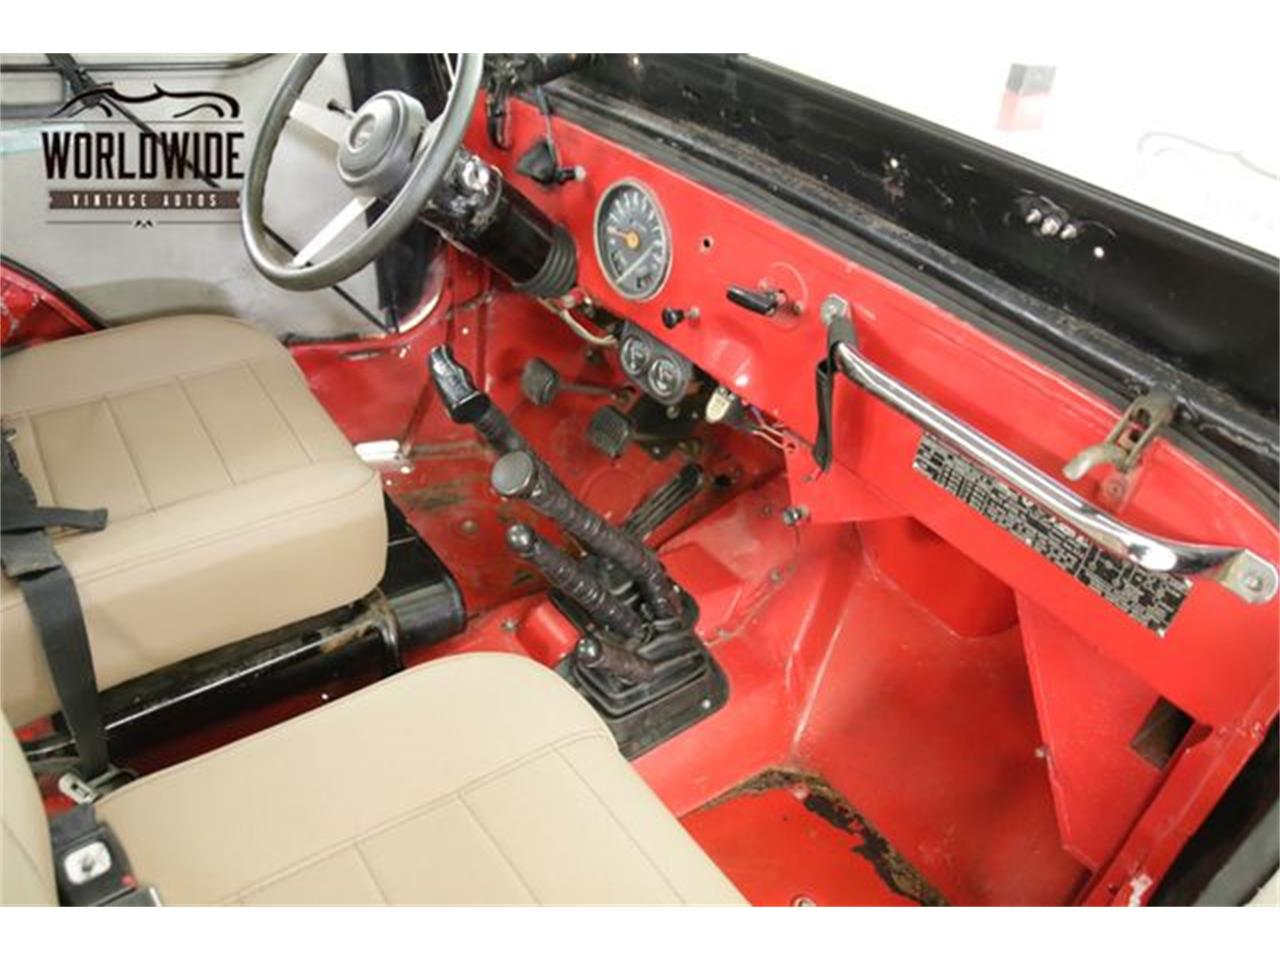 Large Picture of Classic 1962 Willys Jeep Offered by Worldwide Vintage Autos - PSGE